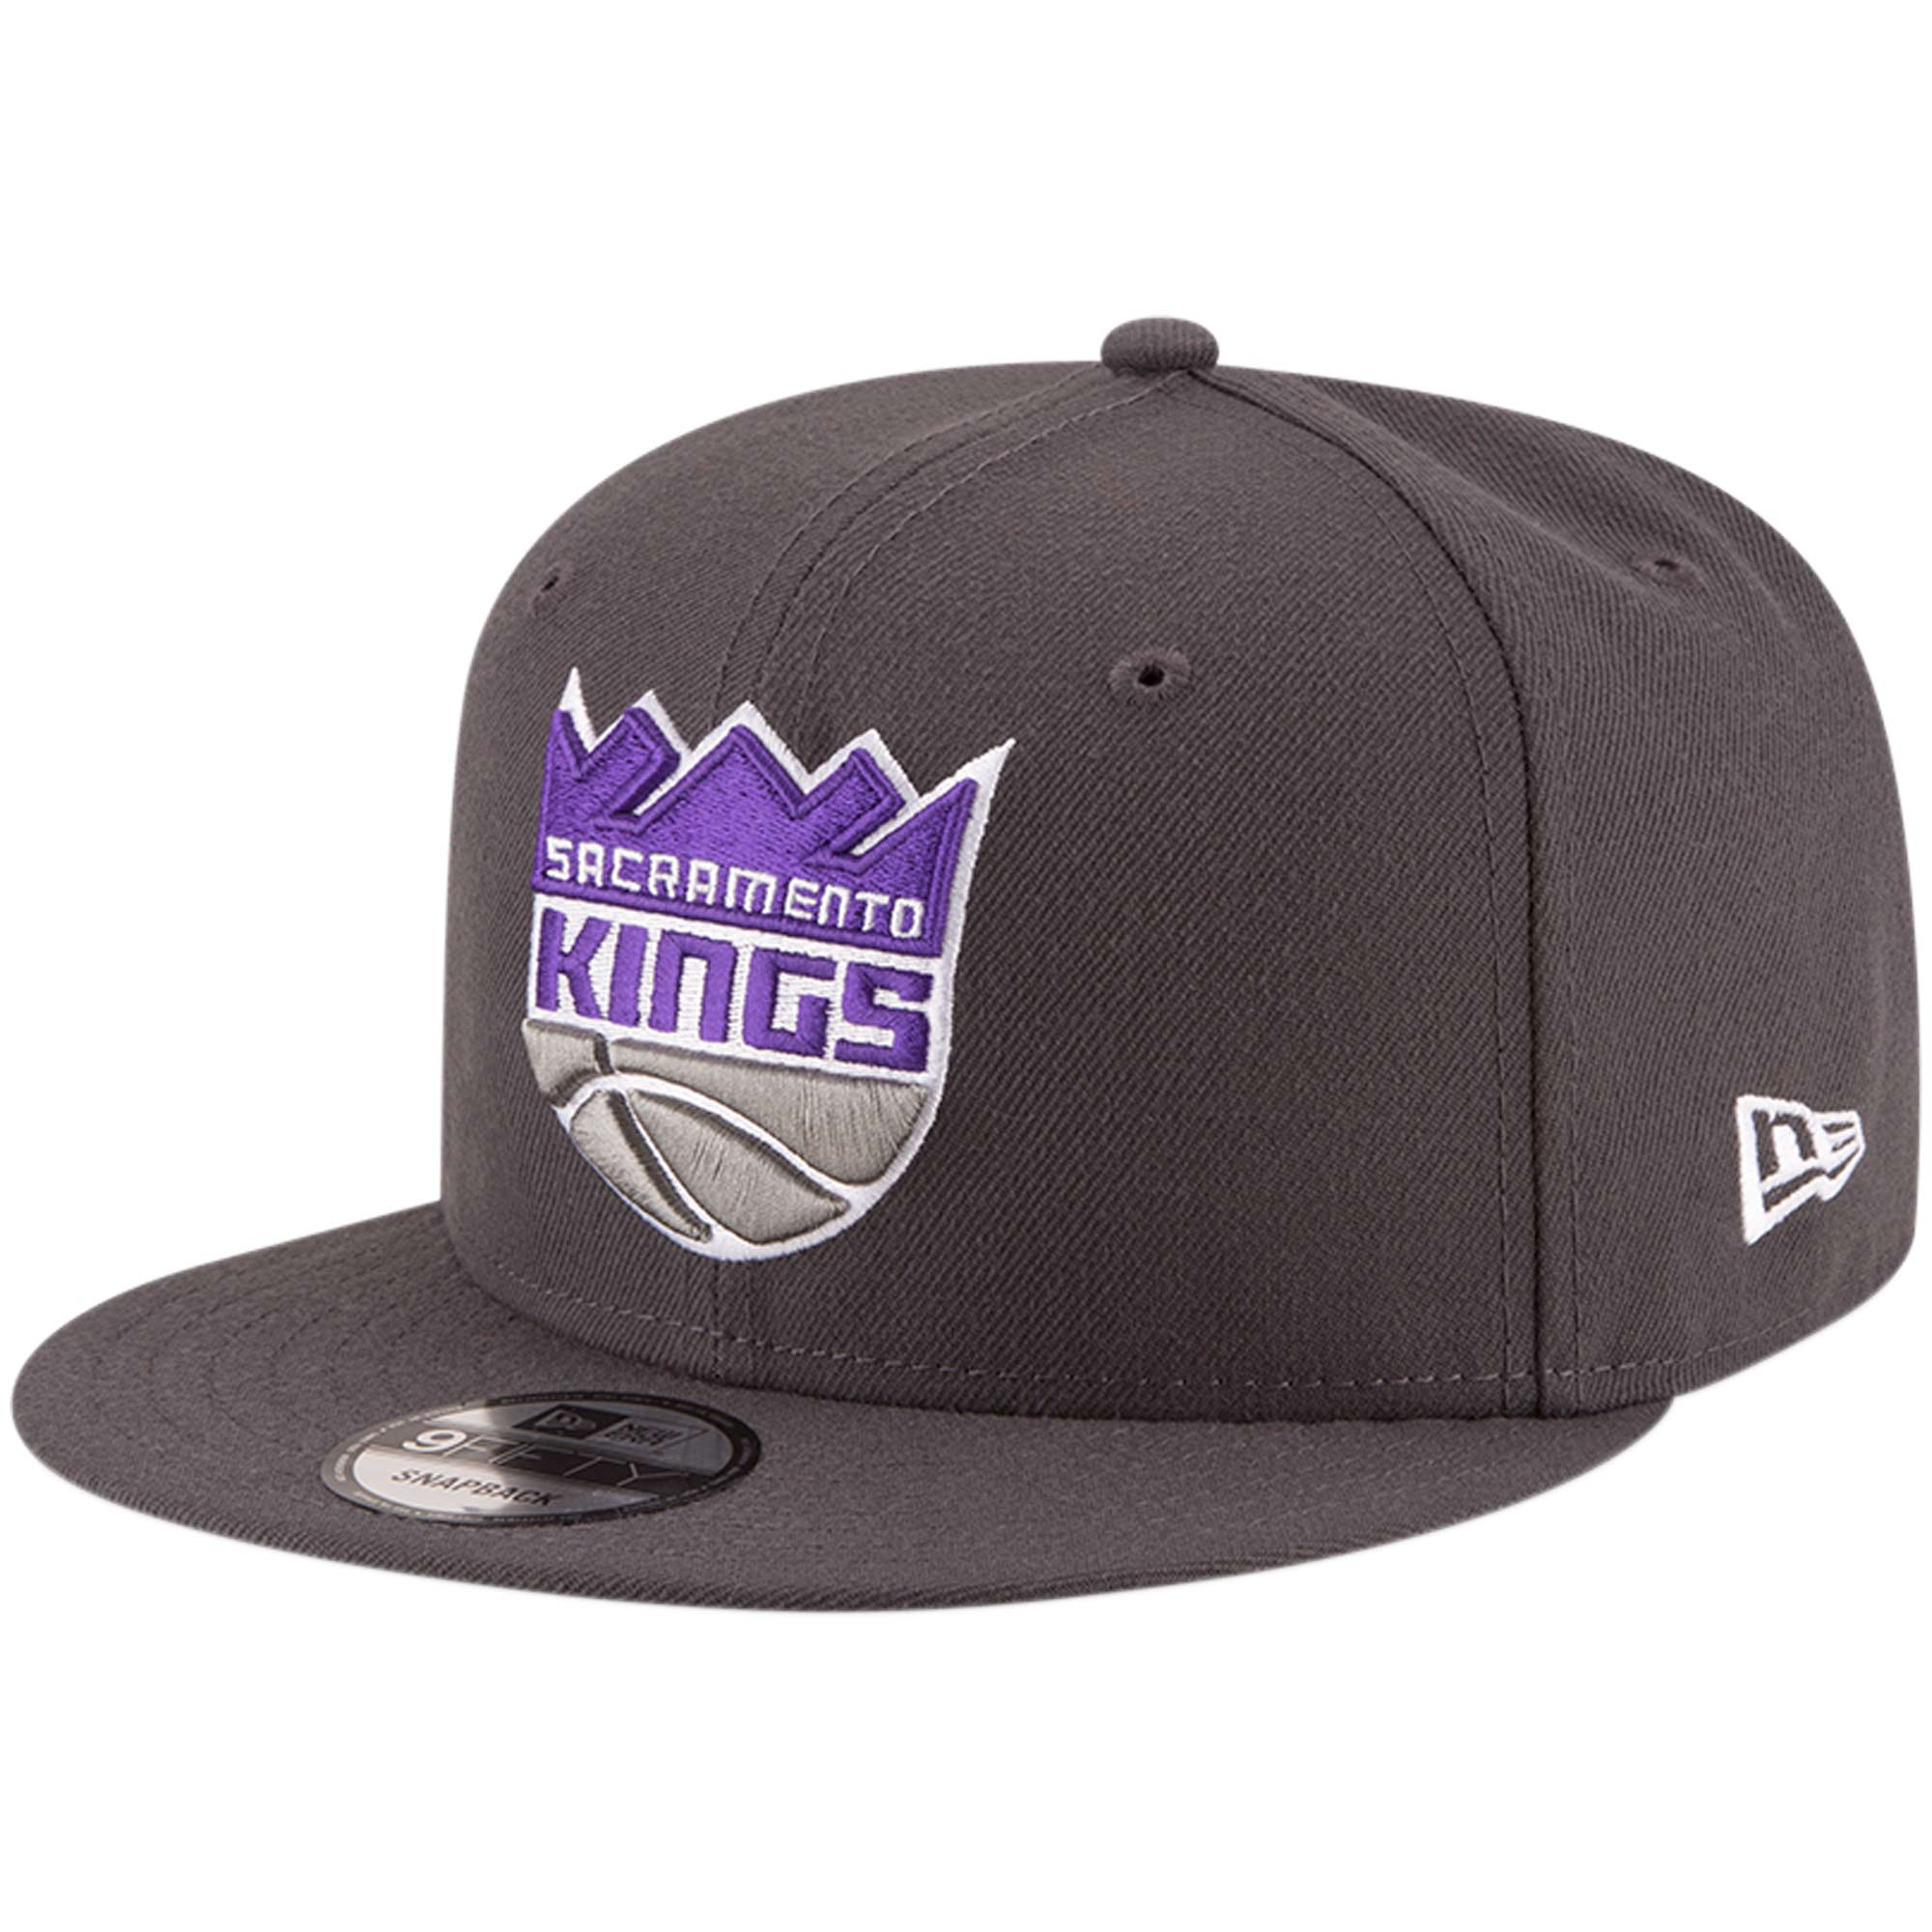 Sacramento Kings New Era Official Team Color 9FIFTY Adjustable Snapback Hat - Gray